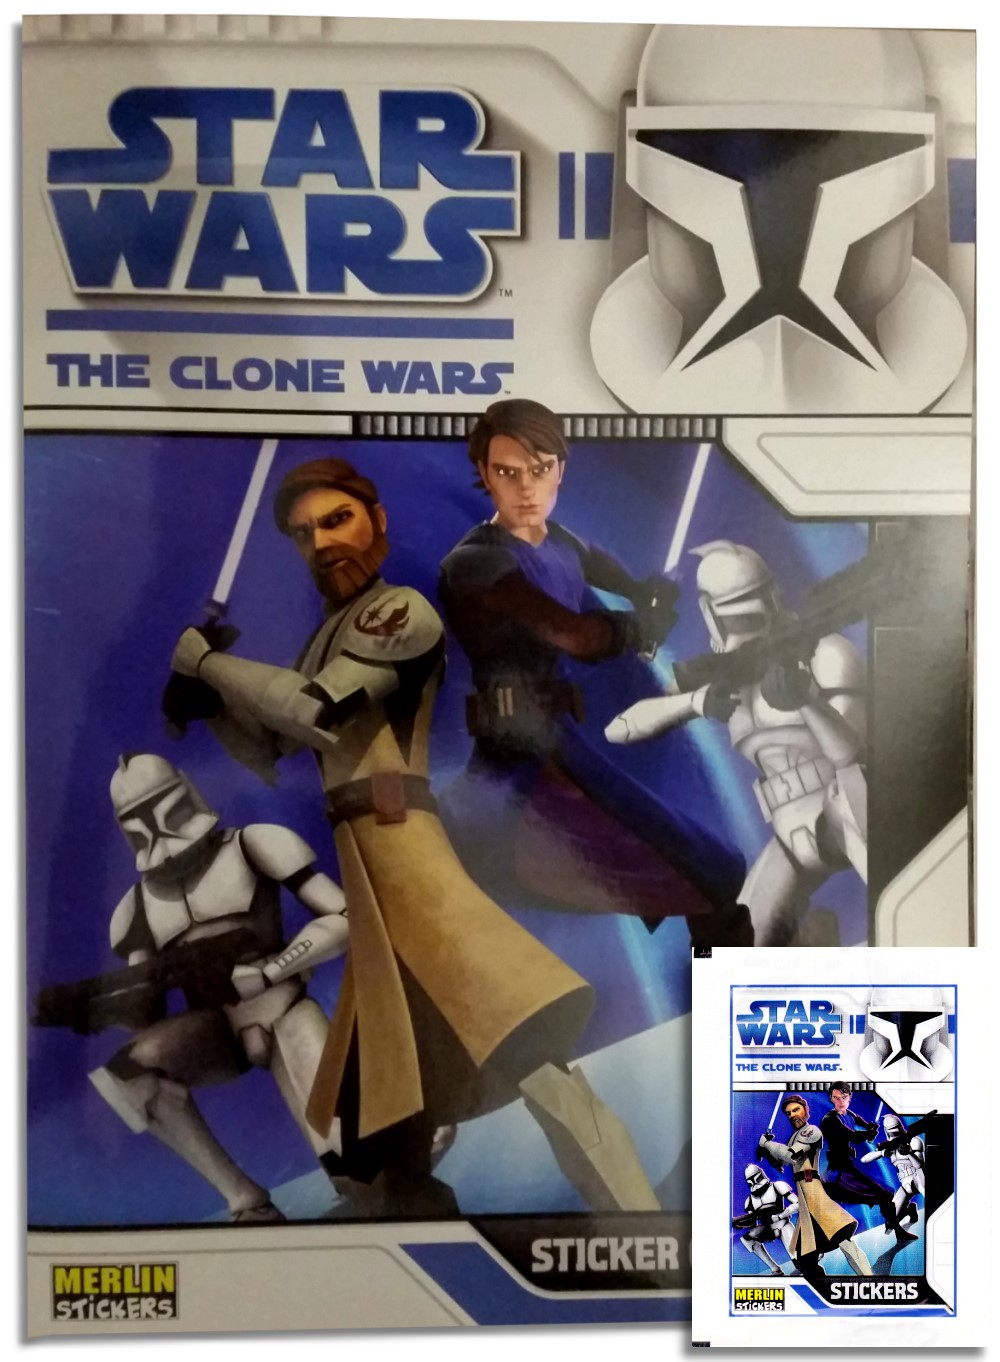 Star wars the clone wars sticker album cover